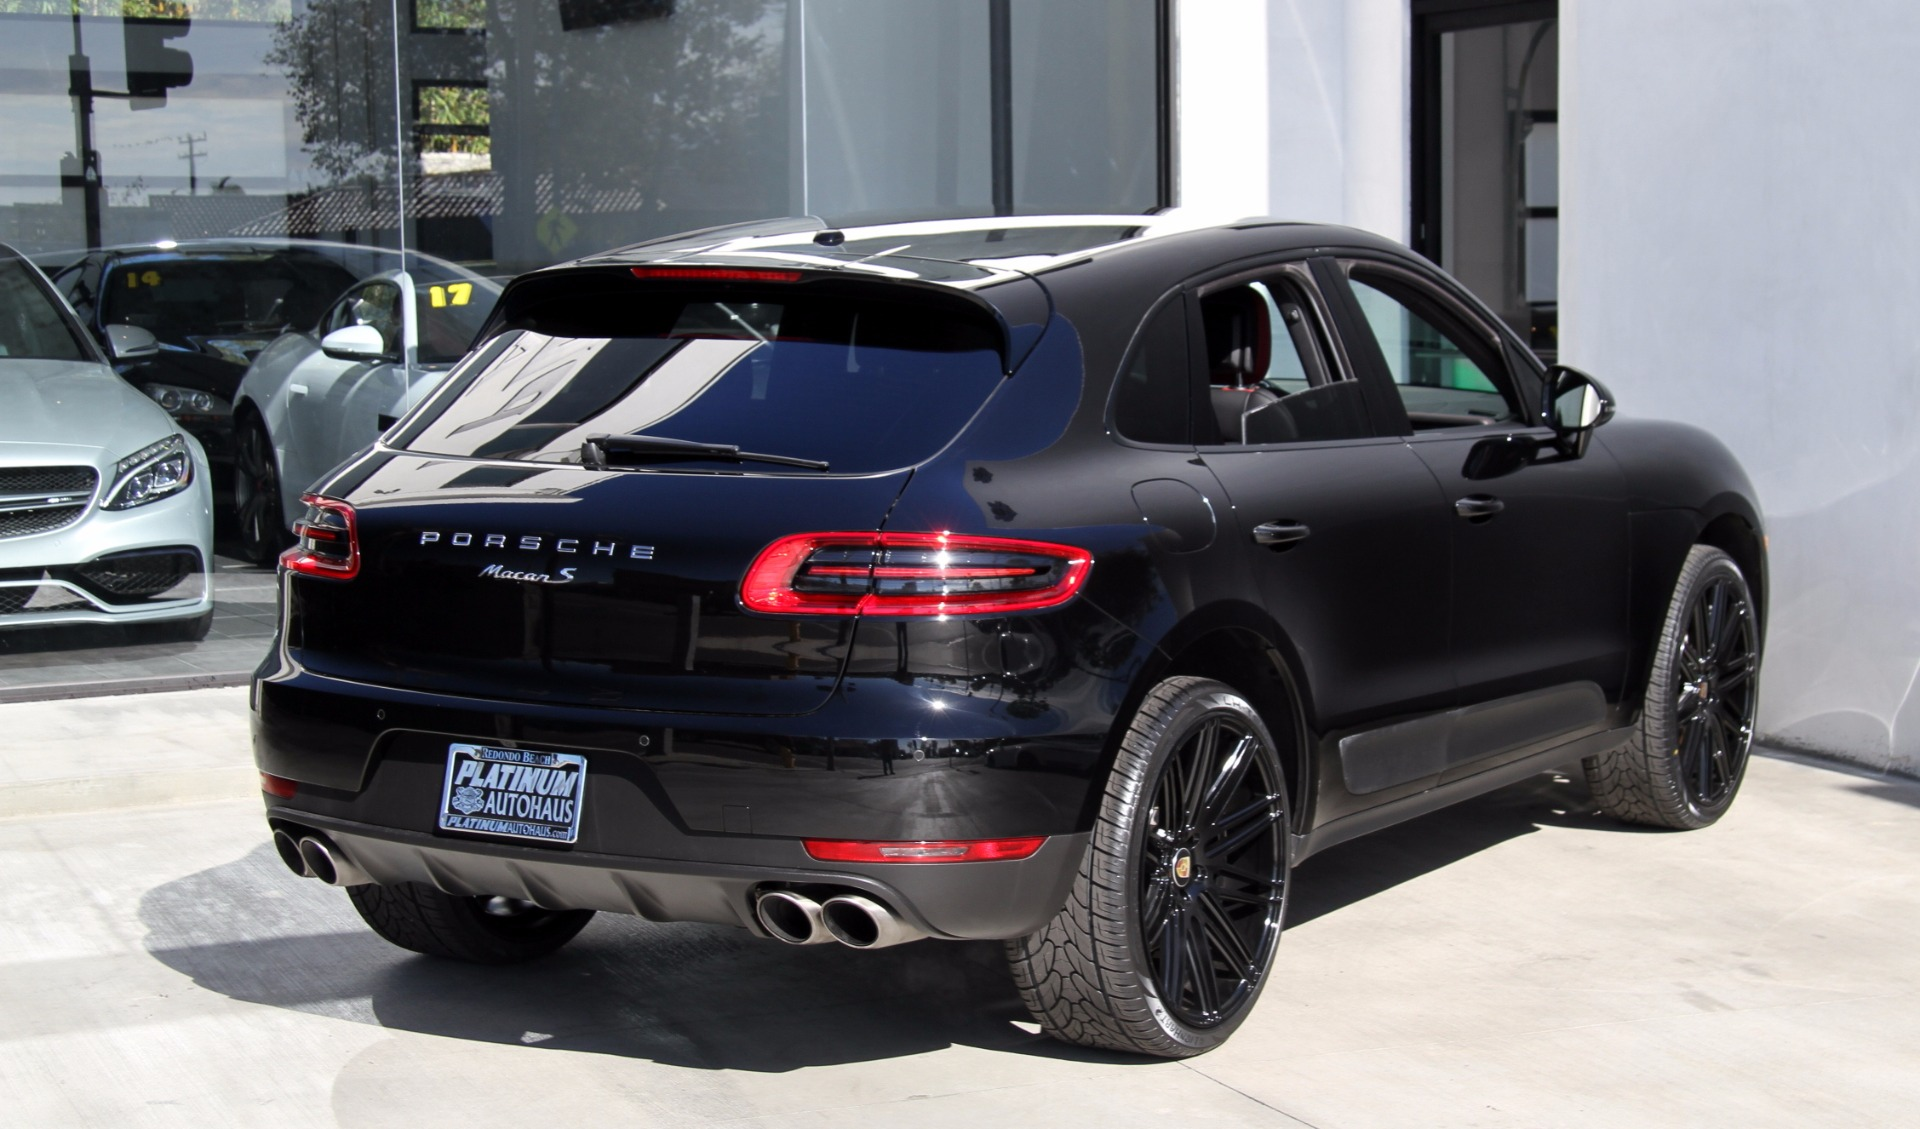 Vehicles For Sale Near Me >> 2016 Porsche Macan S Stock # 6031 for sale near Redondo Beach, CA | CA Porsche Dealer